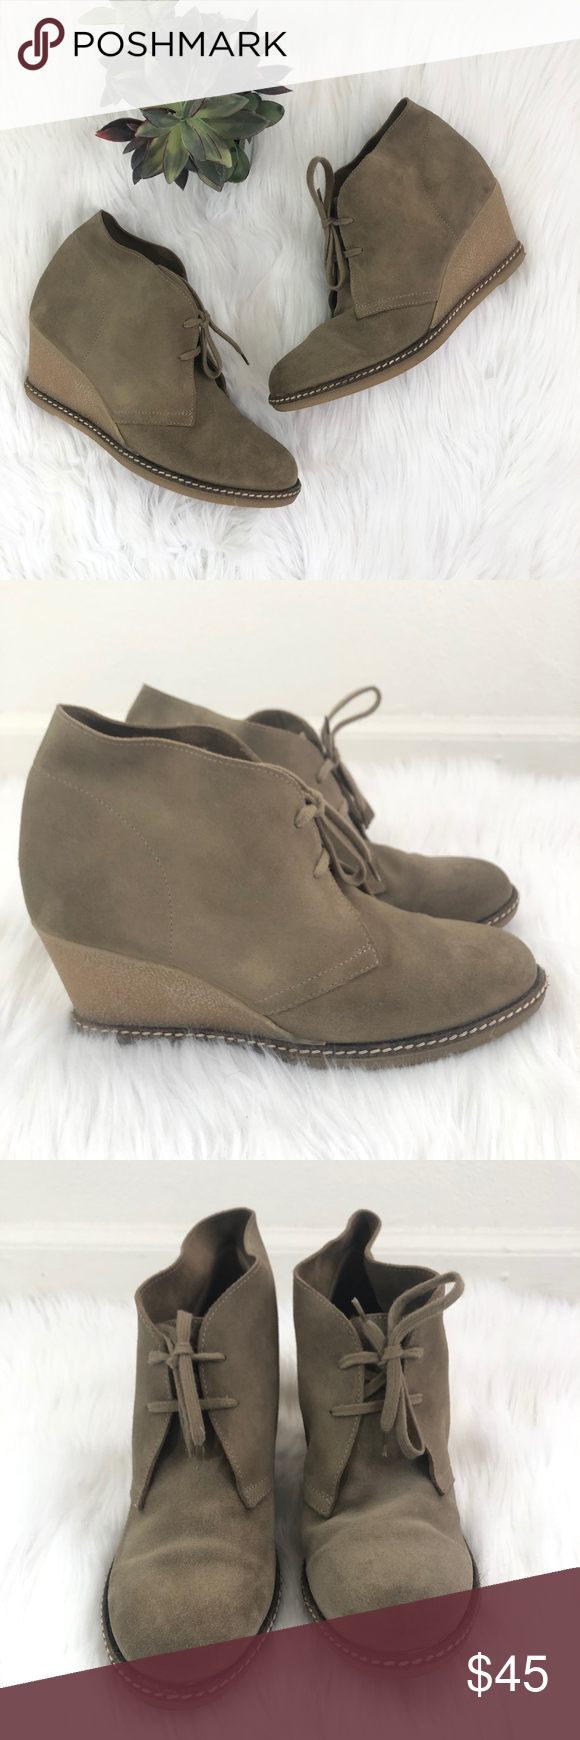 How to macalister wear wedge boots